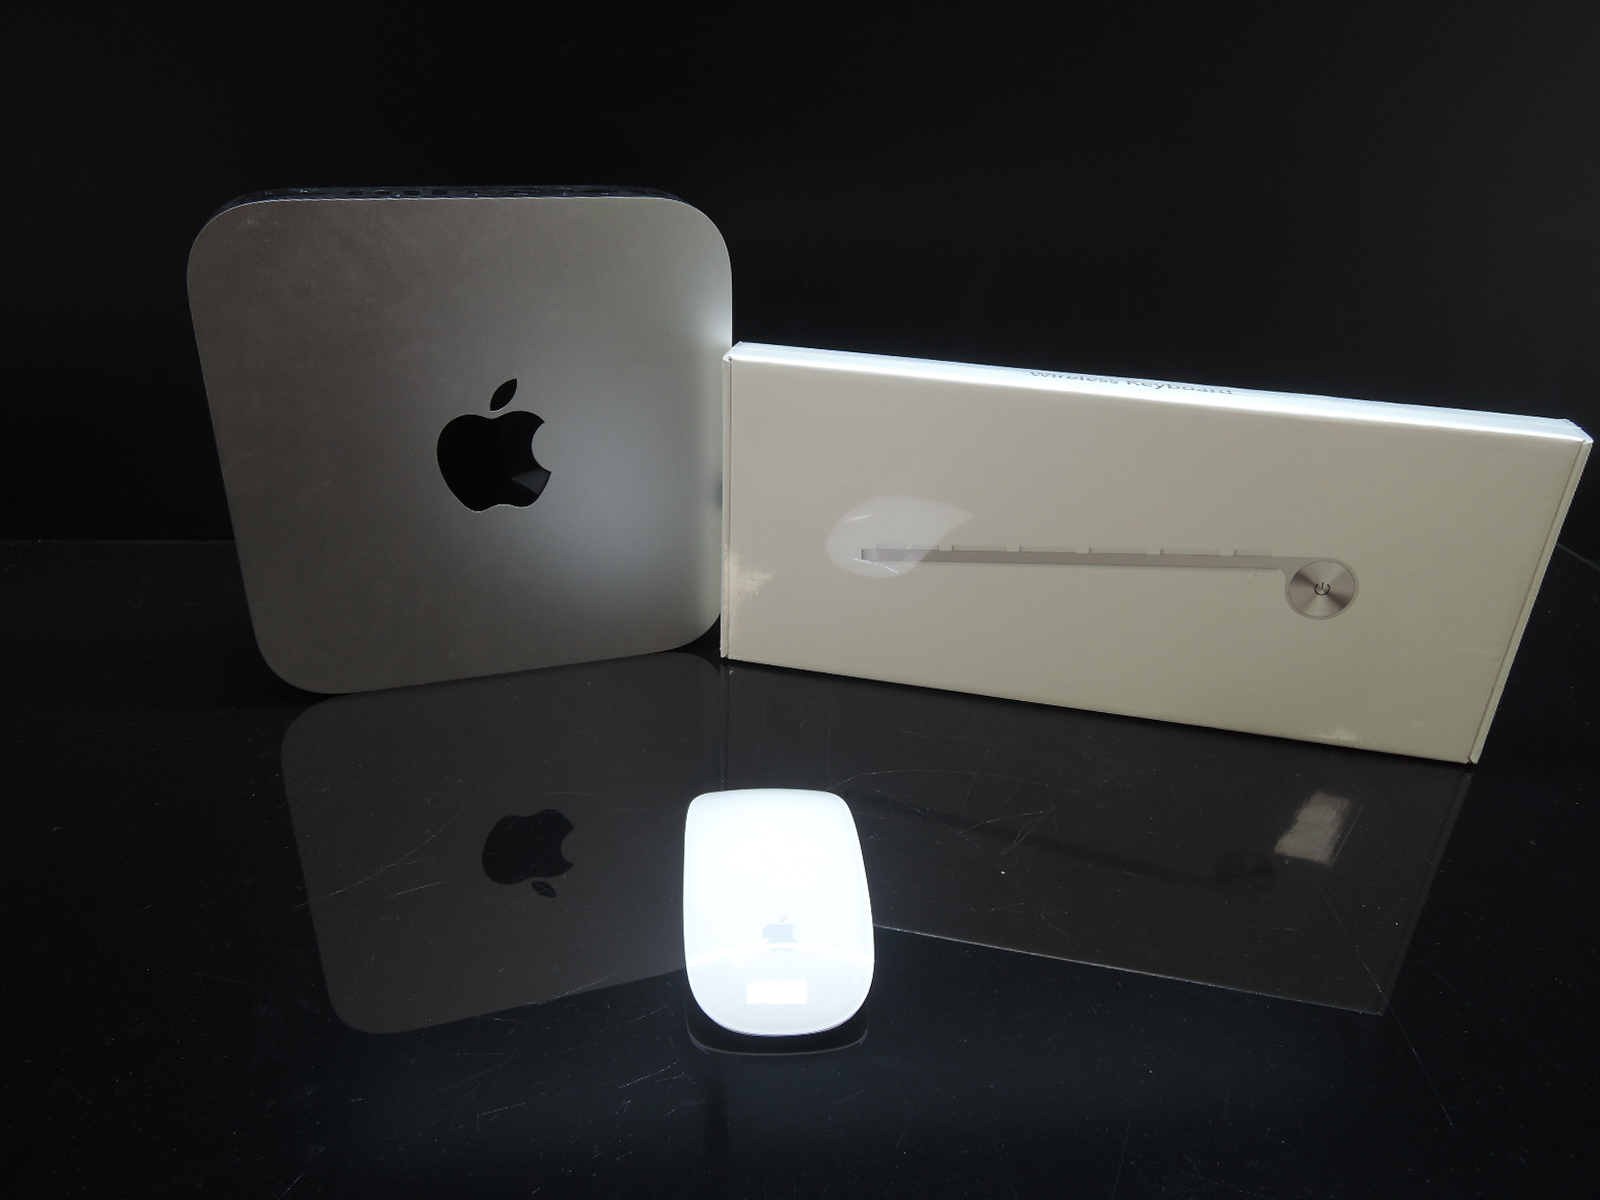 Apple Mac Mini i5 2.3 Ghz/8GB RAM/240GB SSD + 500GB HDD